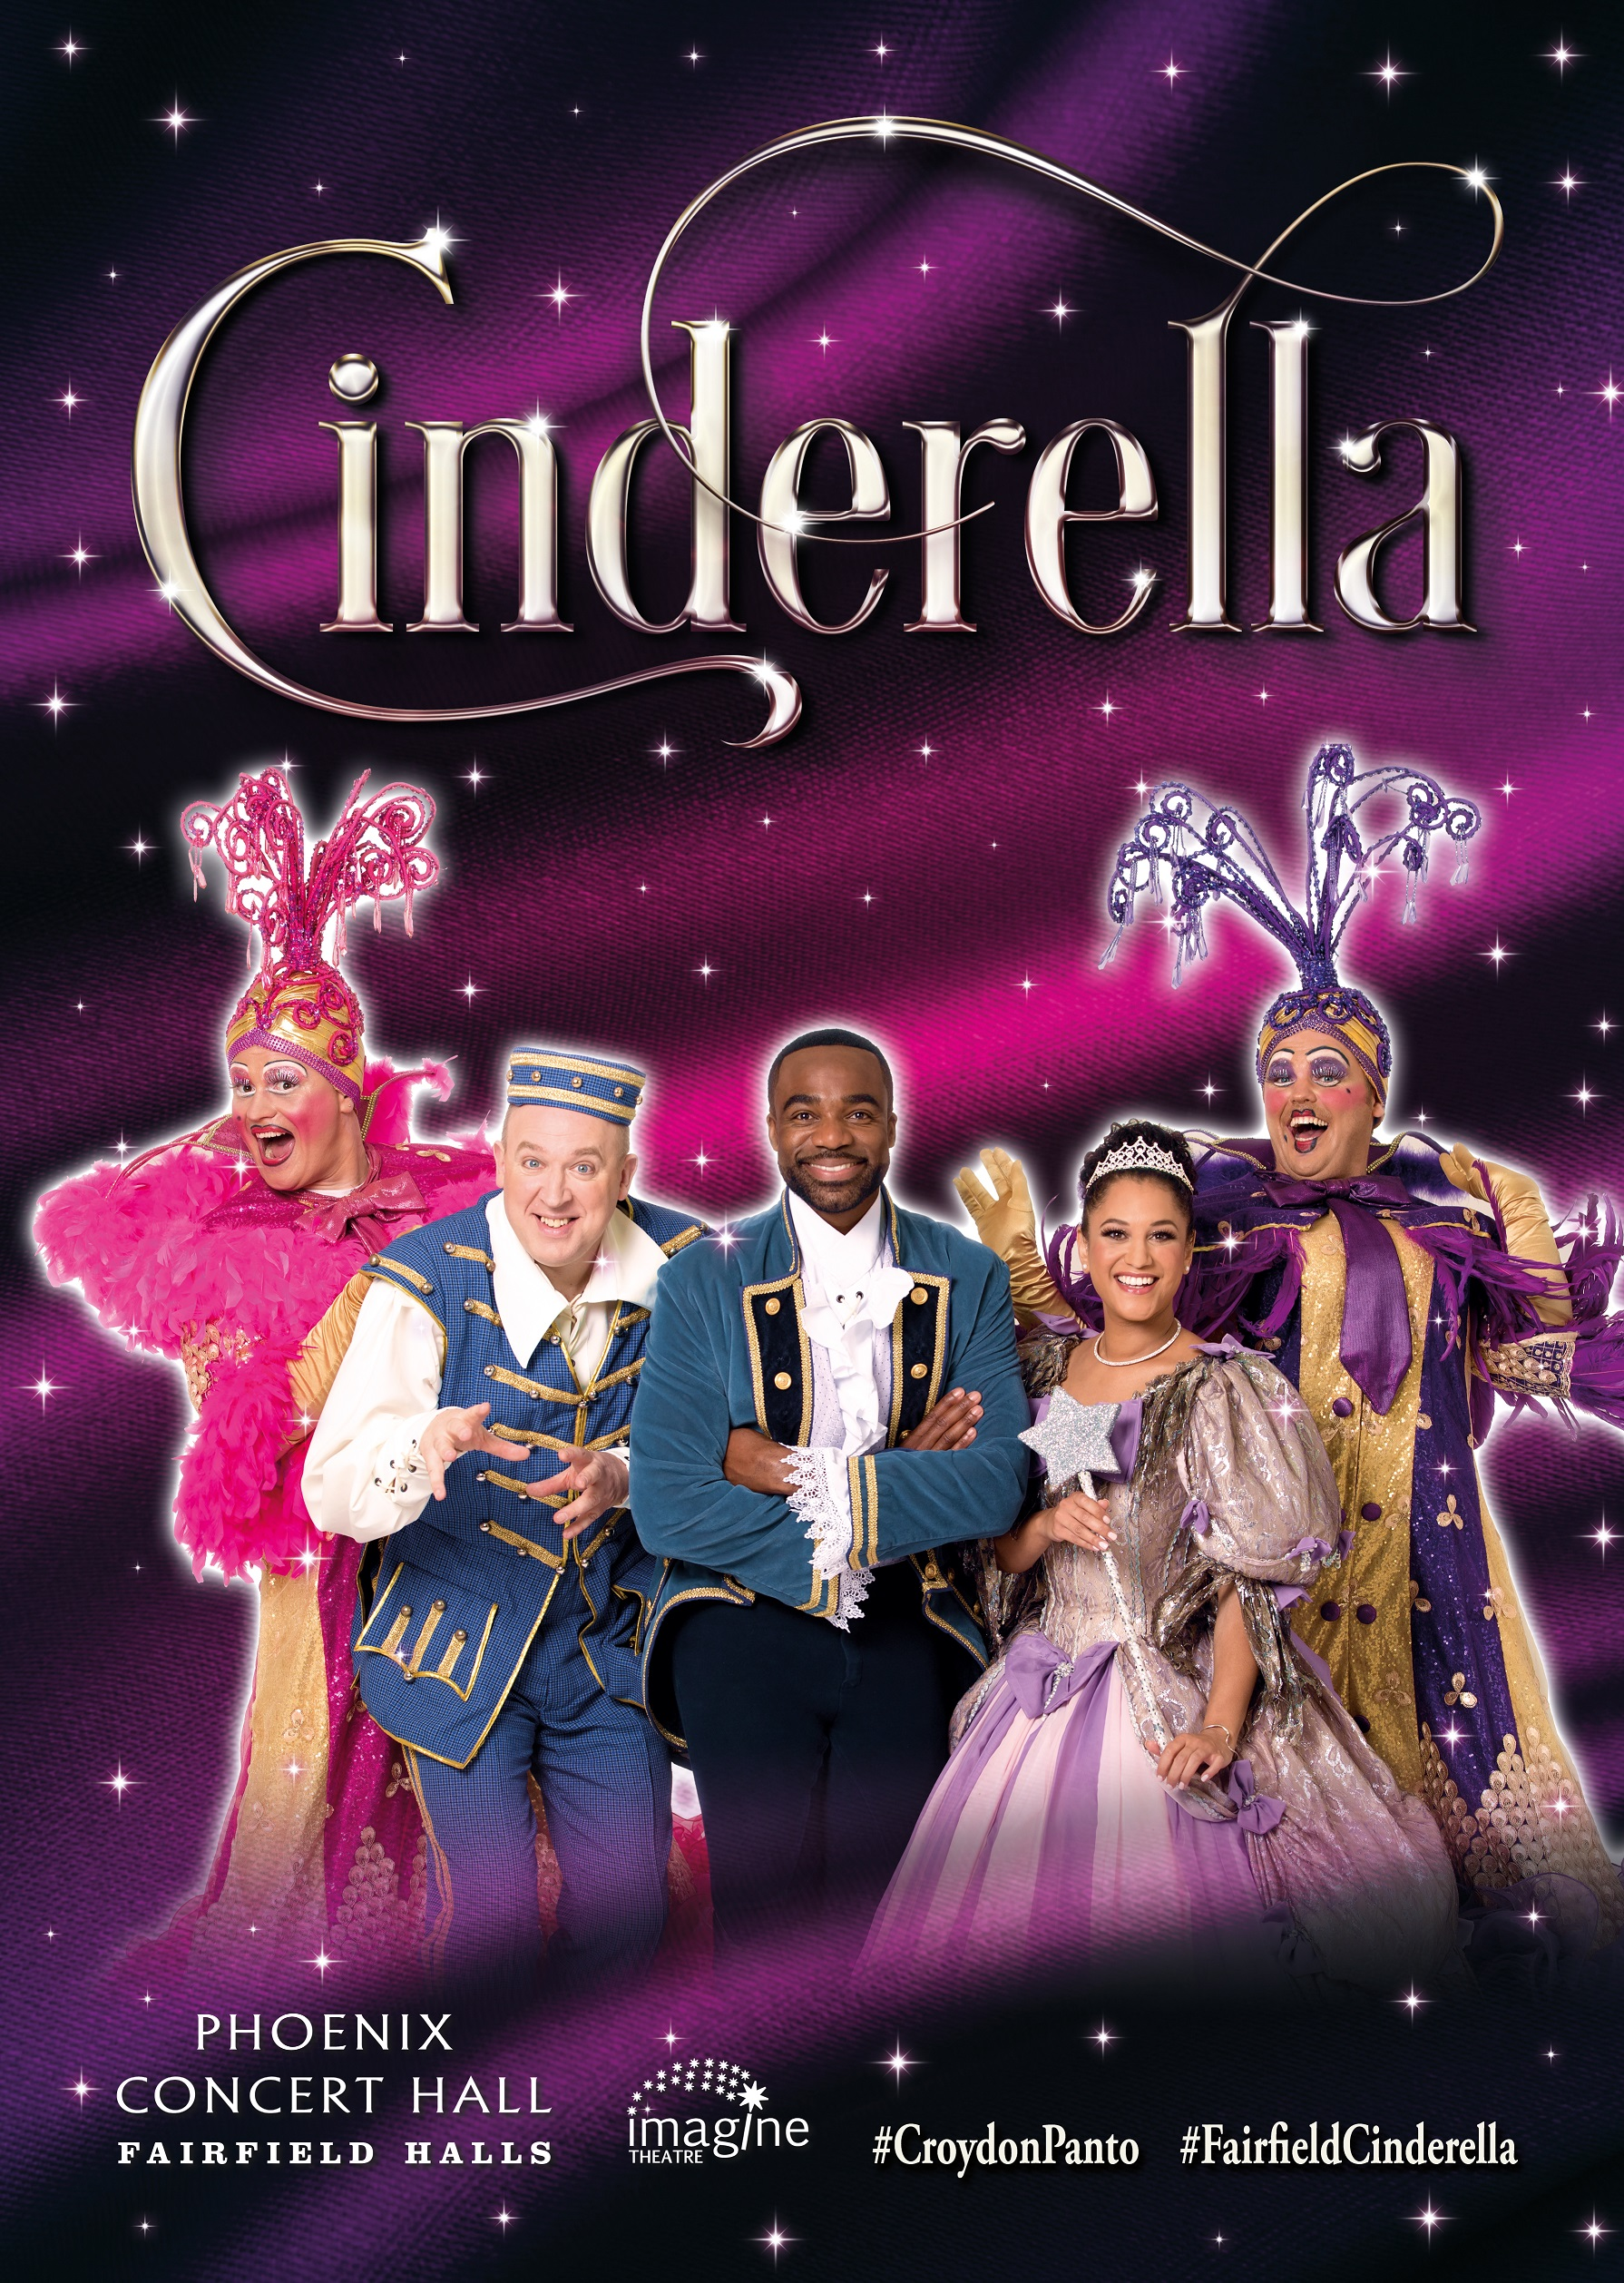 Cinderella stars Ore Oduba as Dandini, Comedian Tim Vine as Buttons, CBeebies Cat Sandion as the Fairy Godmother and Jason Marc-Williams and Alistair Barron as the Ugly Sisters